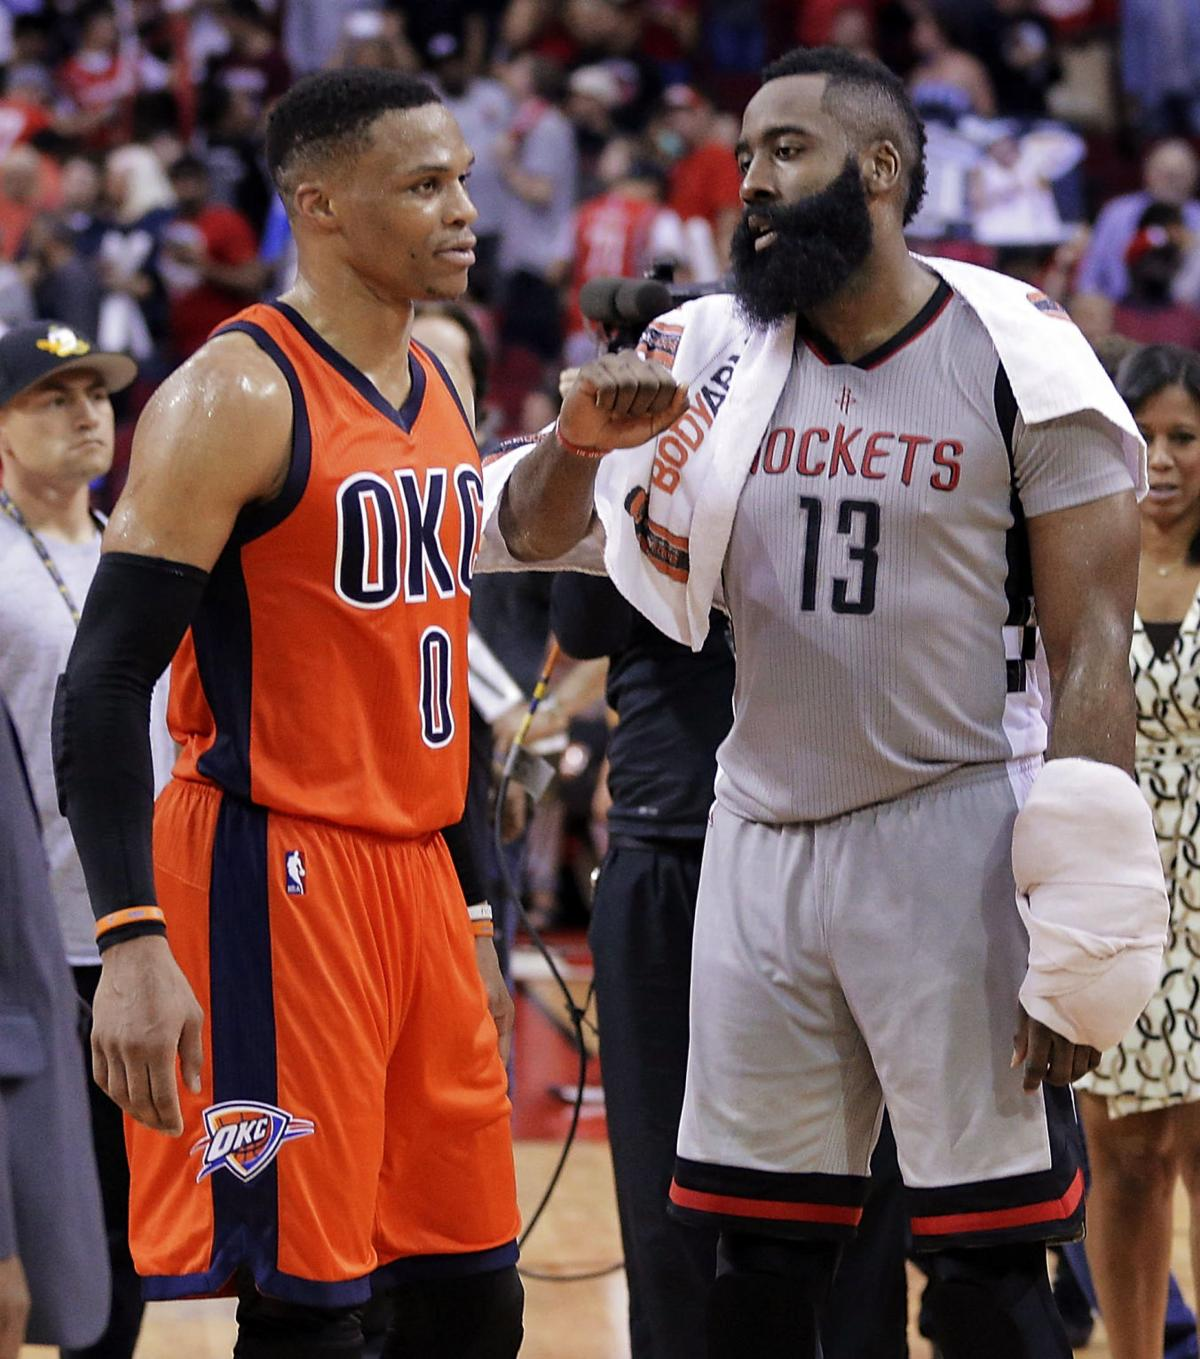 Rockets Vs Okc Game 6: ThunderNotes: Westbrook Appreciates Friendship With Harden